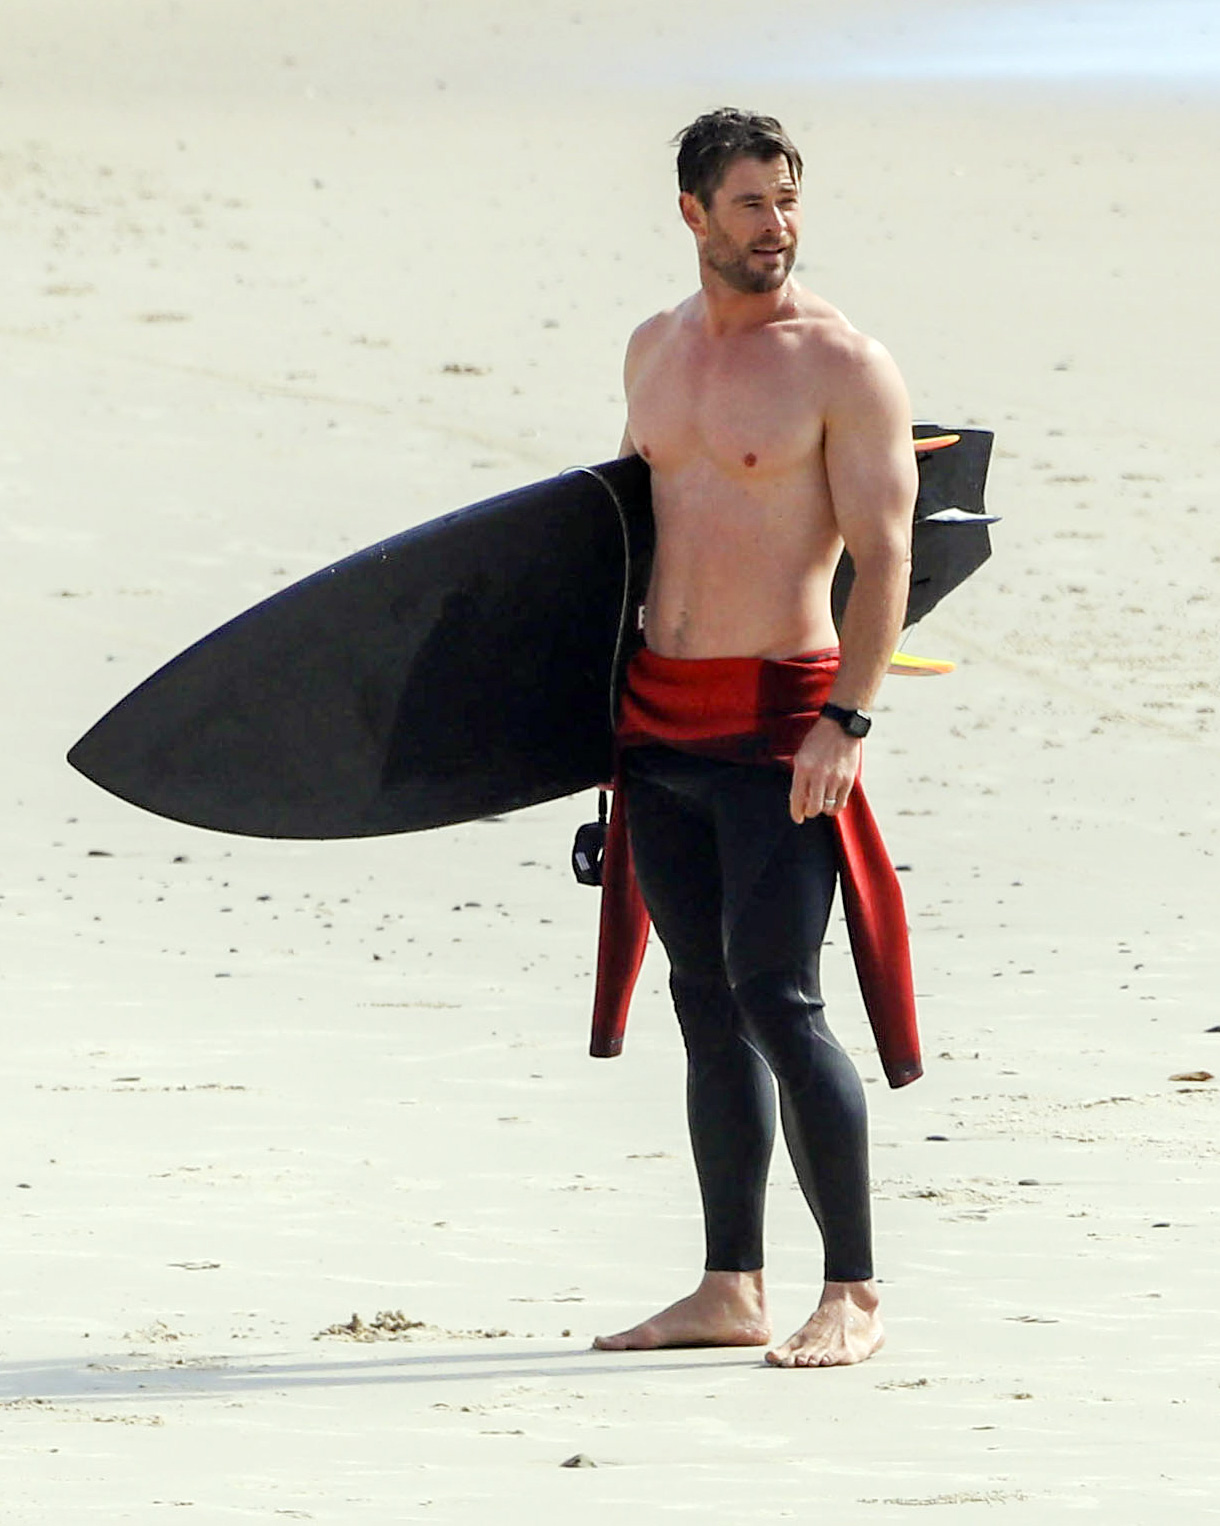 Chris Hemsworth and wife Elsa Pataky hit the beach for a morning surf and some exercise, amid the regional Covid lockdown in NSW, Australia.